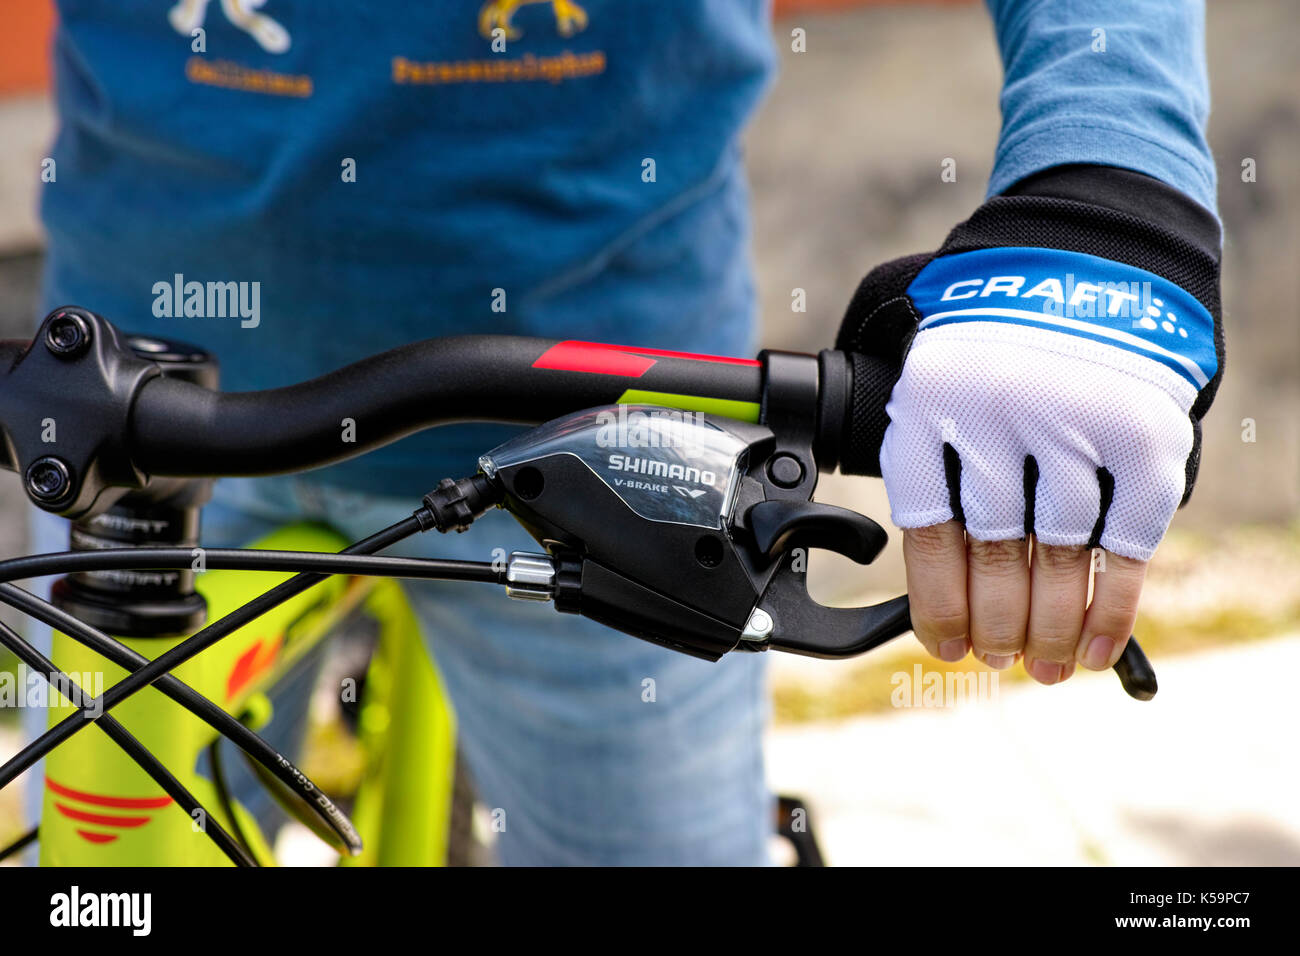 Tambov, Russian Federation - May 07, 2017 Child hand with Craft glove on handlebars with Shimano speed shift and Stock Photo